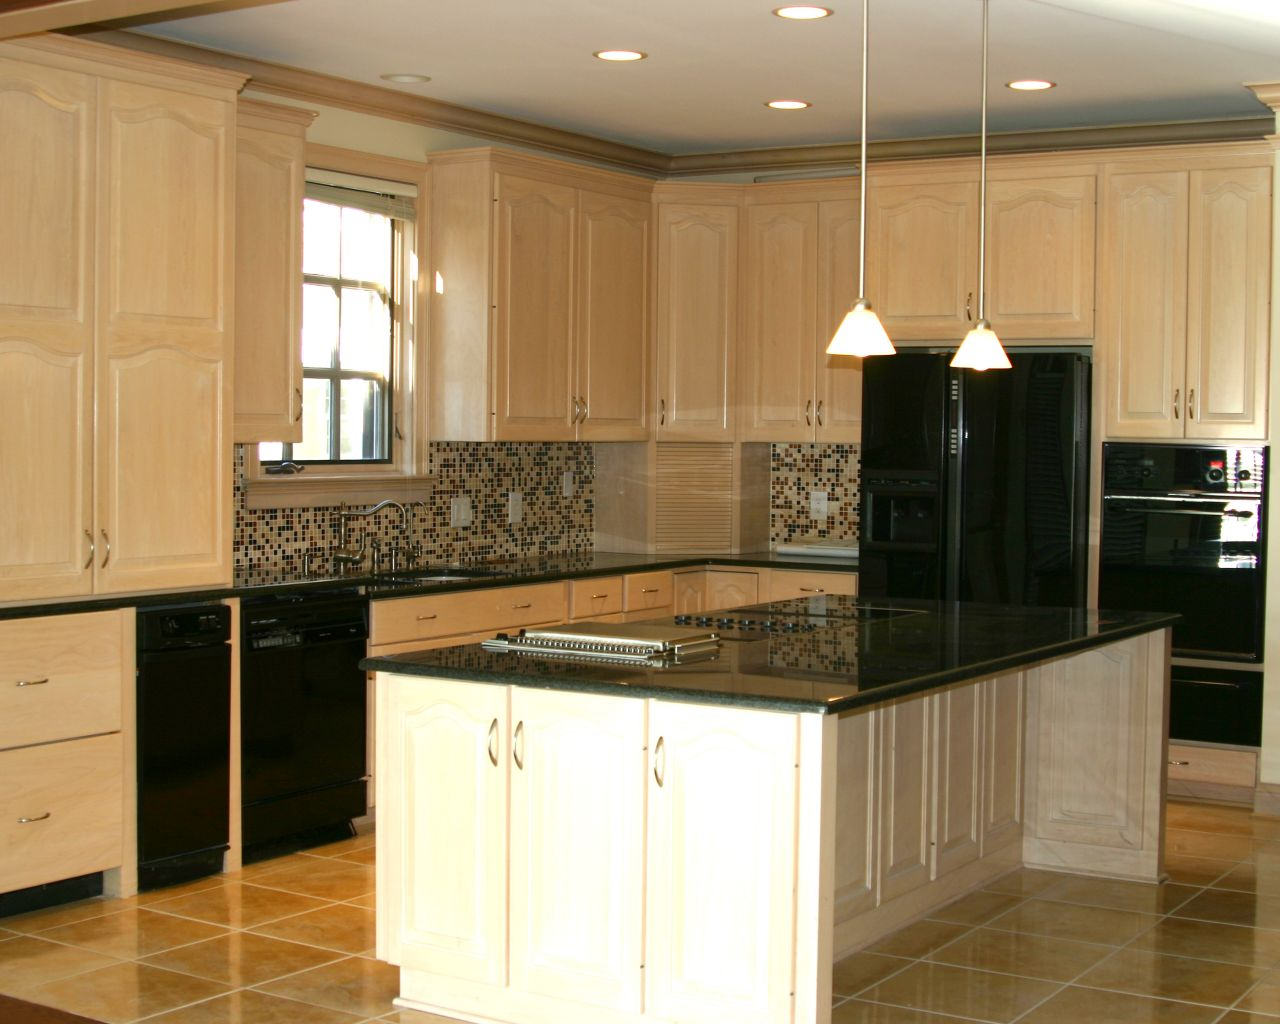 Kitchens 2014 Trends 2014 kitchen remodeling design trends & ideas cleveland, akron ohio